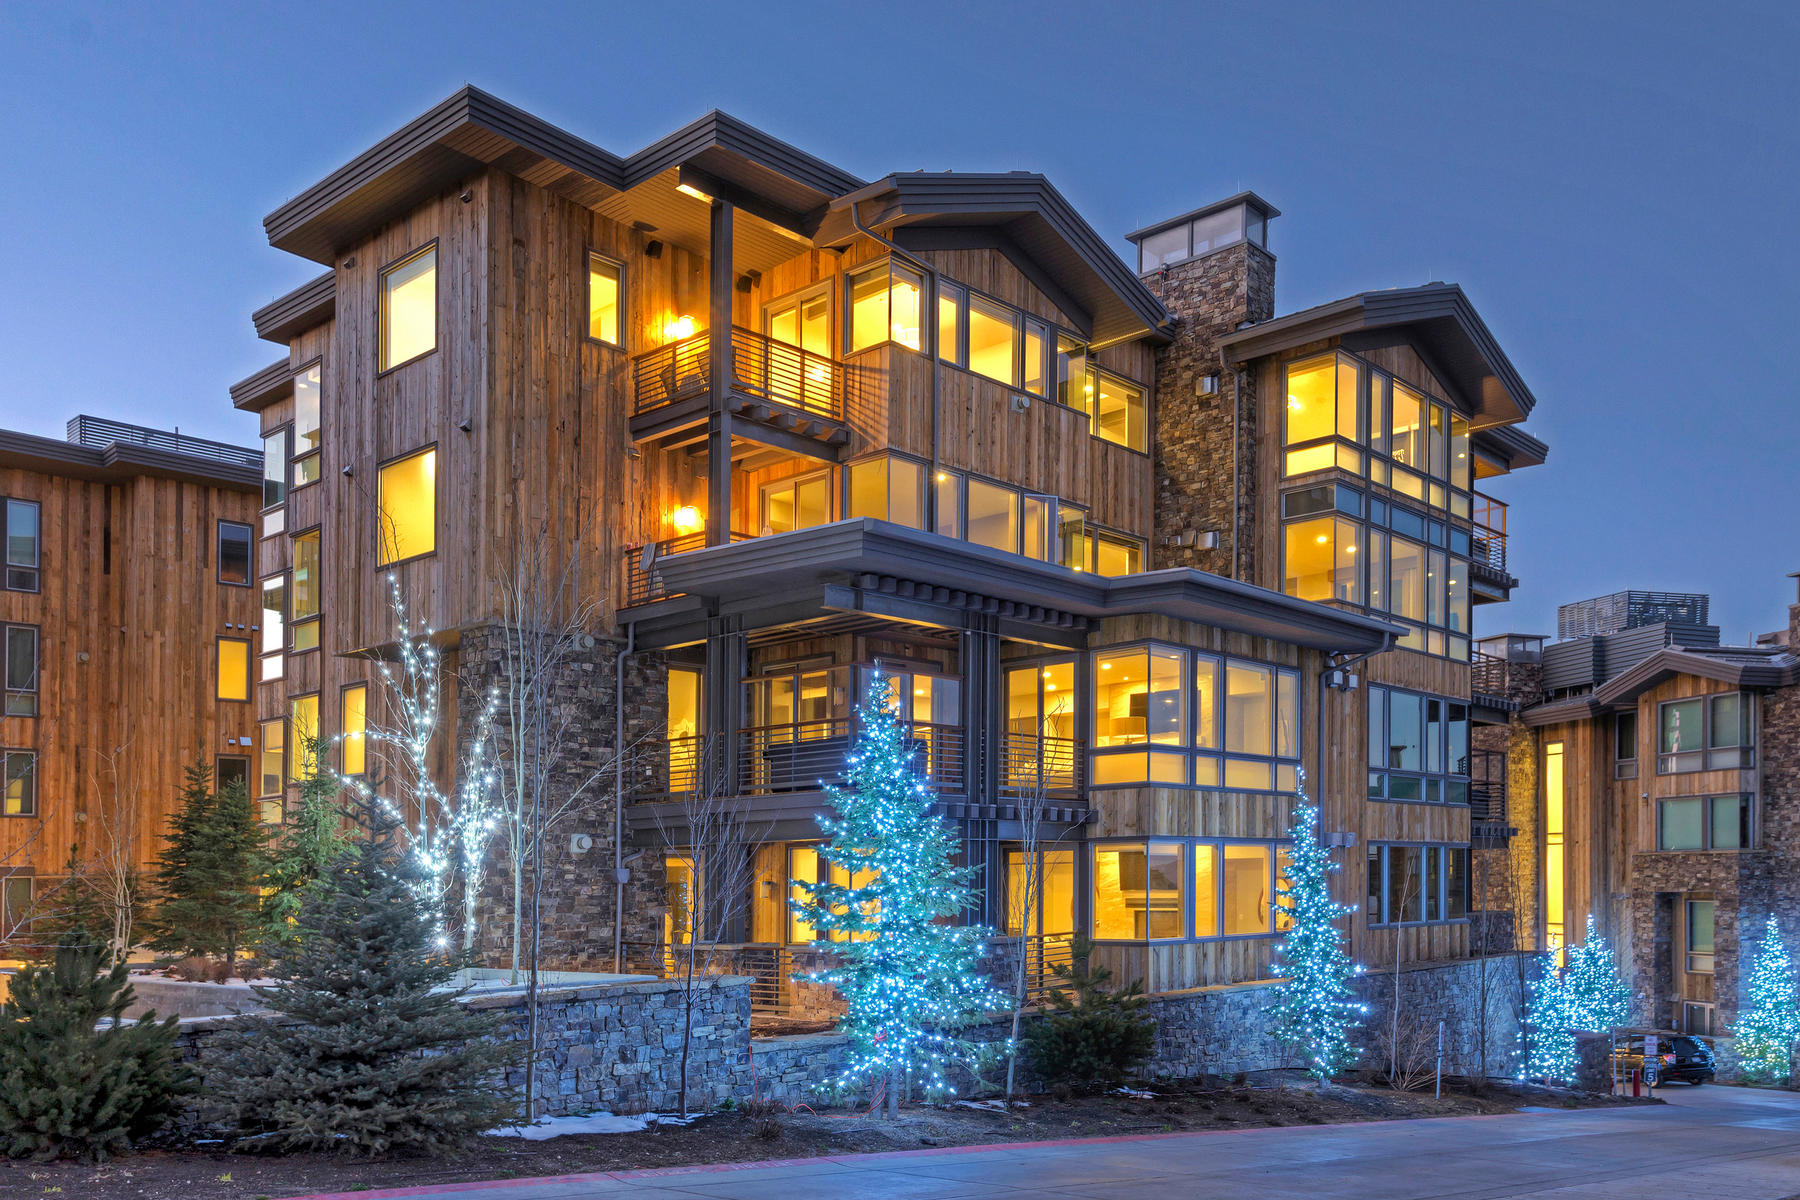 Copropriété pour l Vente à Brand New Turn-Key Ski-in/Ski-out Penthouse at Deer Valley 7101 Stein Cir #621, Park City, Utah, 84060 États-Unis